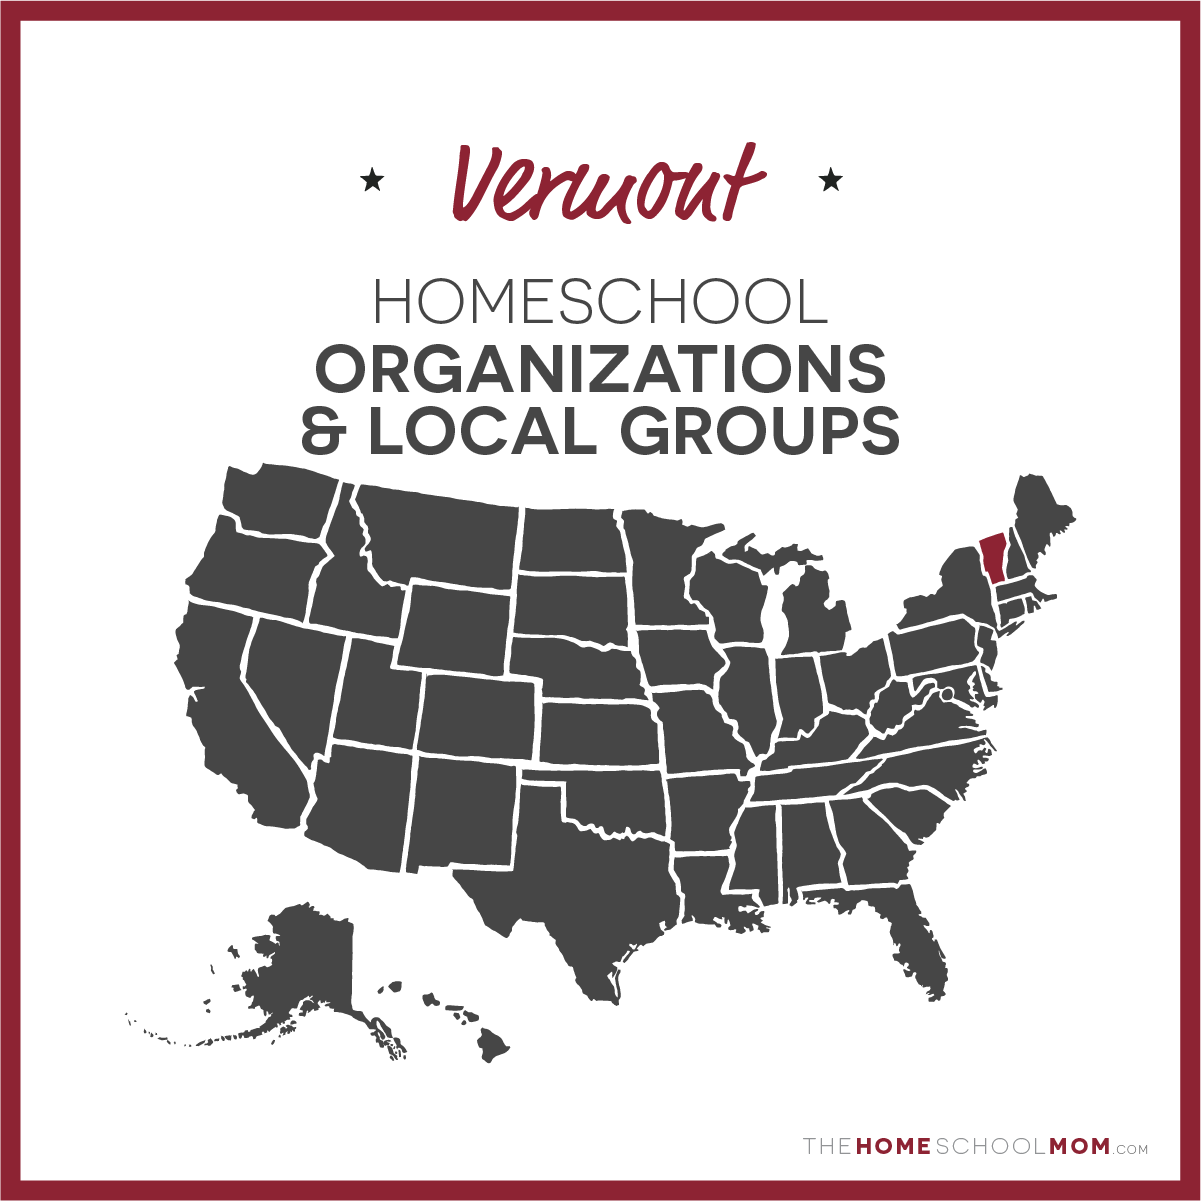 Vermont Homeschool Organizations and Local Groups - TheHomeSchoolMom.com